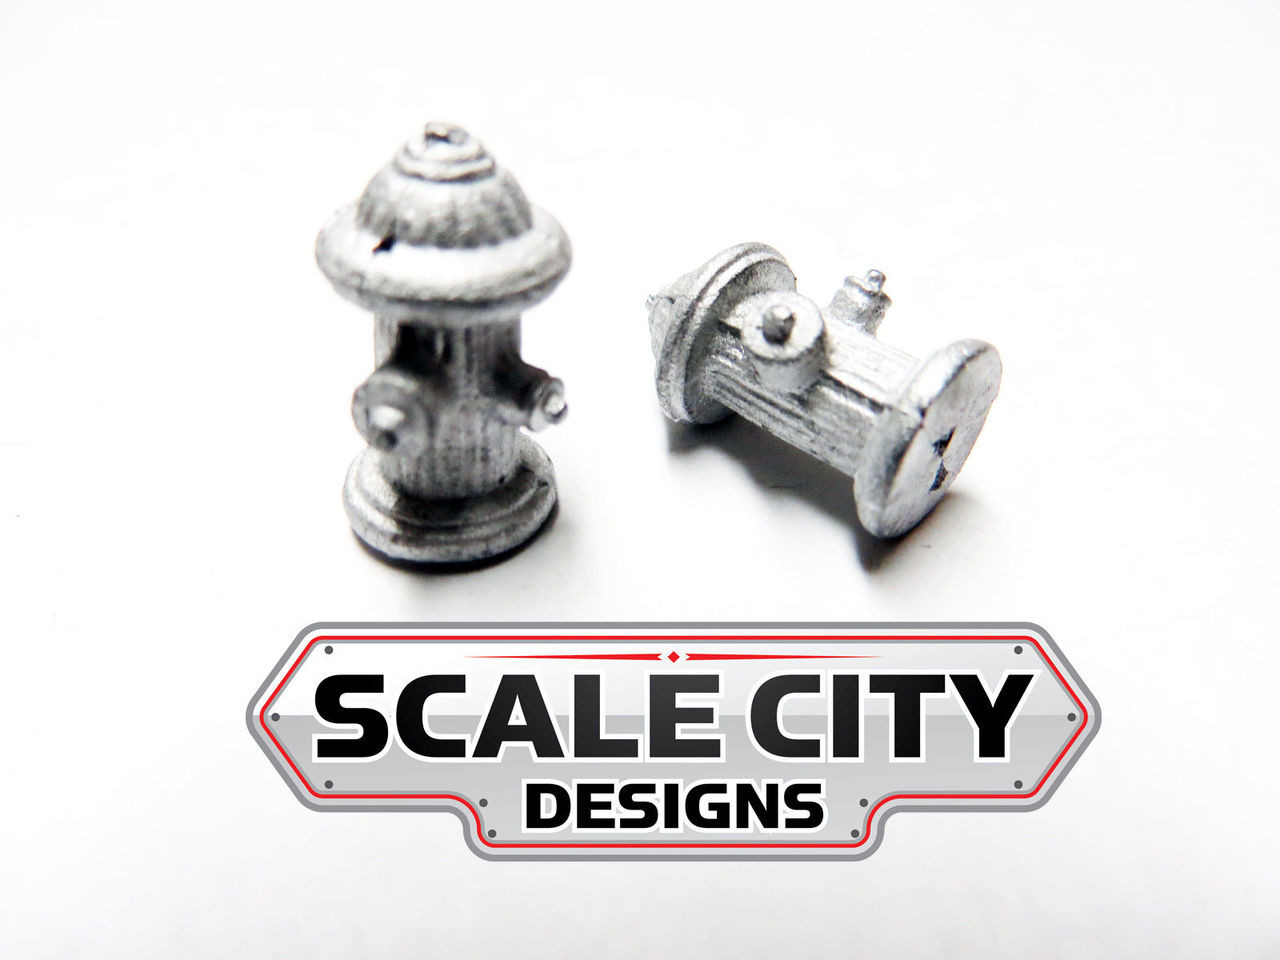 48-020 FIRE HYDRANT SET O SCALE (FORMERLY KEIL-LINE)